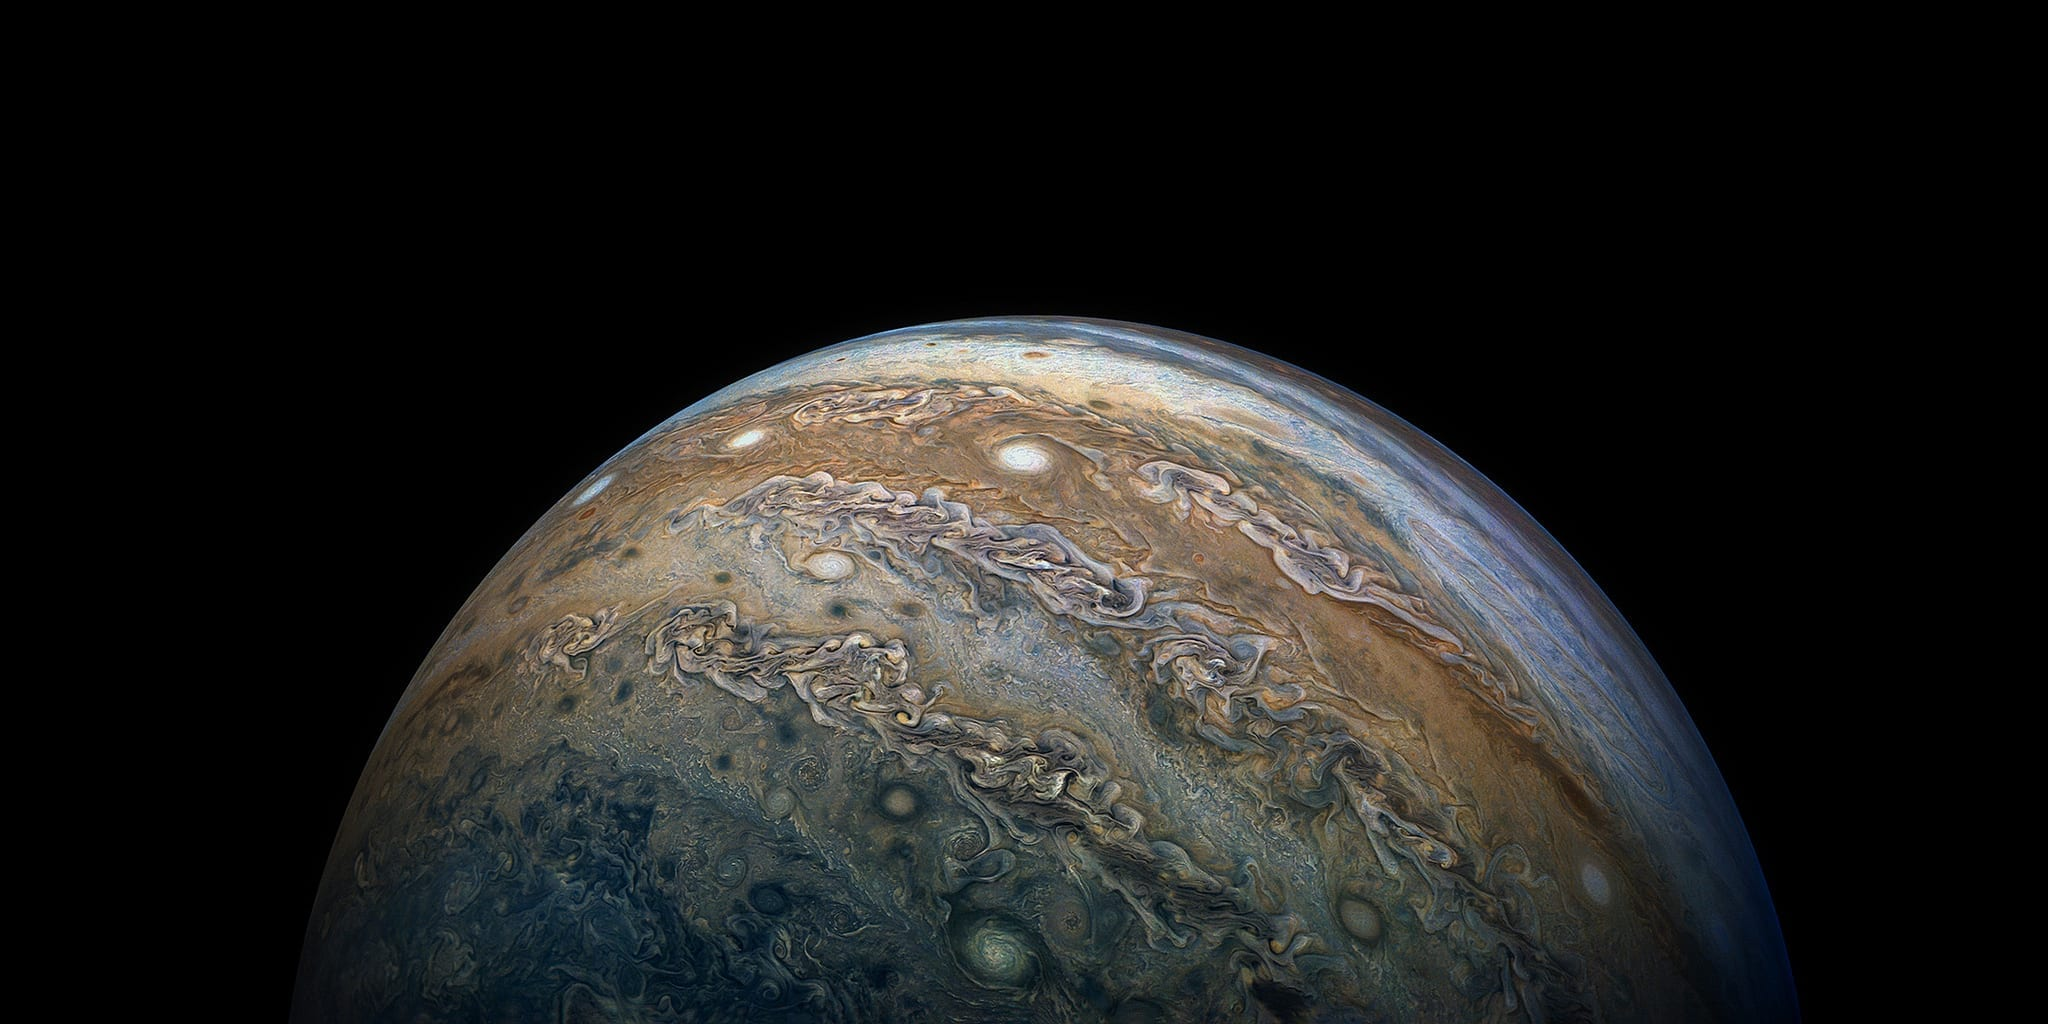 Fall Wallpaper Photos Microsoft Great Red Spot On Jupiter To Evaporate In Less Than Two